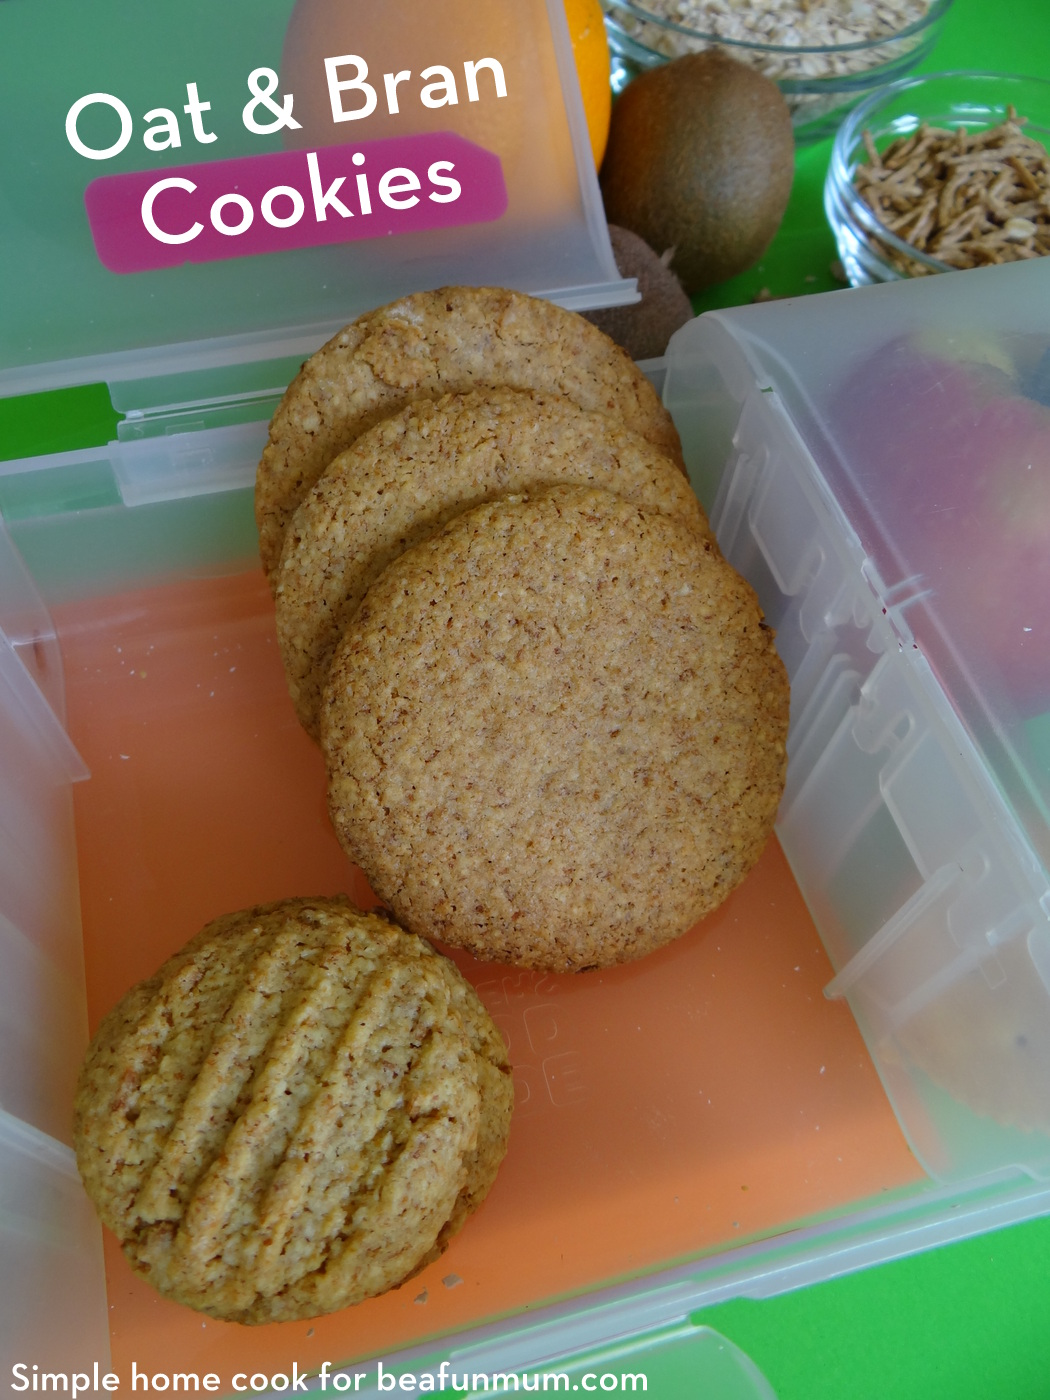 Great for the lunch box - Oat & Bran Cookies